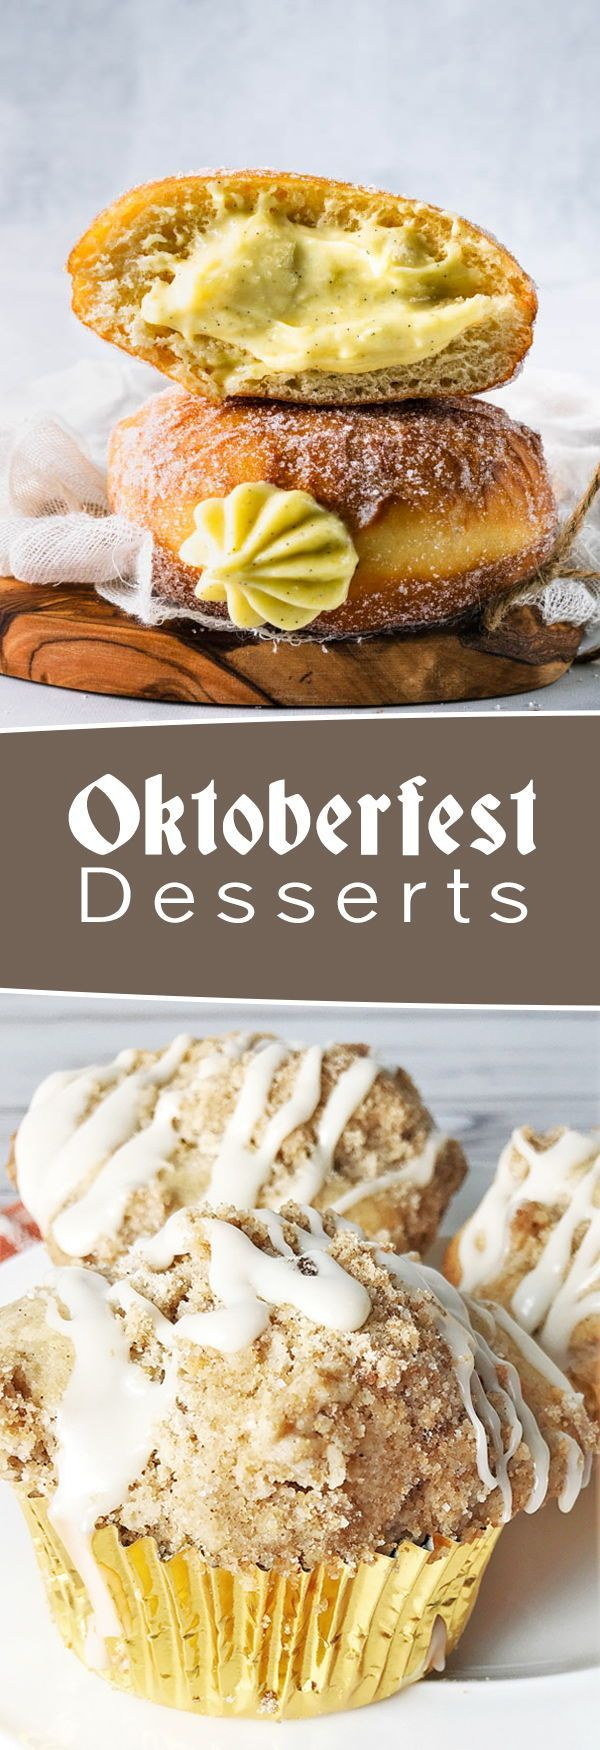 Oktoberfest Recipes: From classic to creative German-inspired recipes to celebrate Oktoberfest